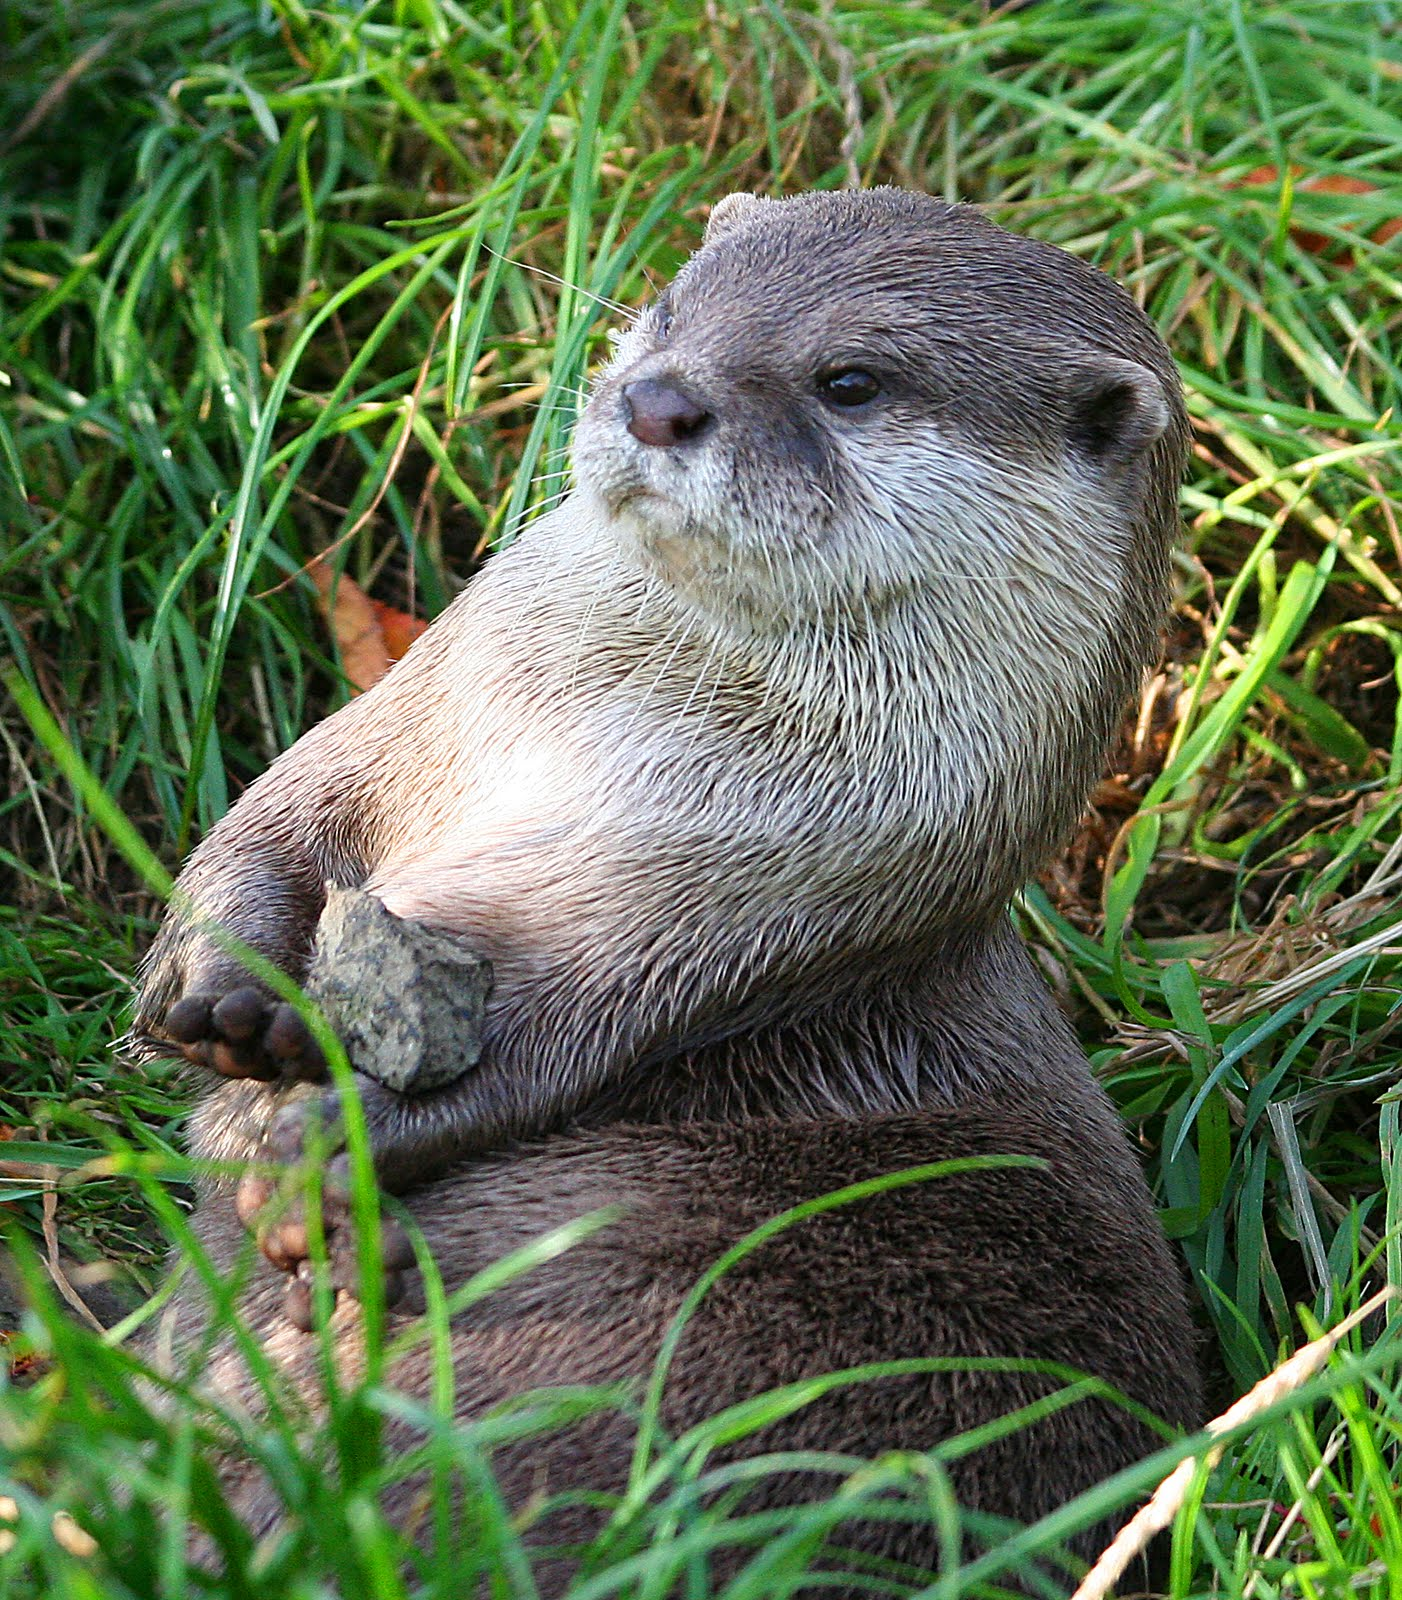 Stinky or Sweet? The Small-Clawed Otter | Featured Creature